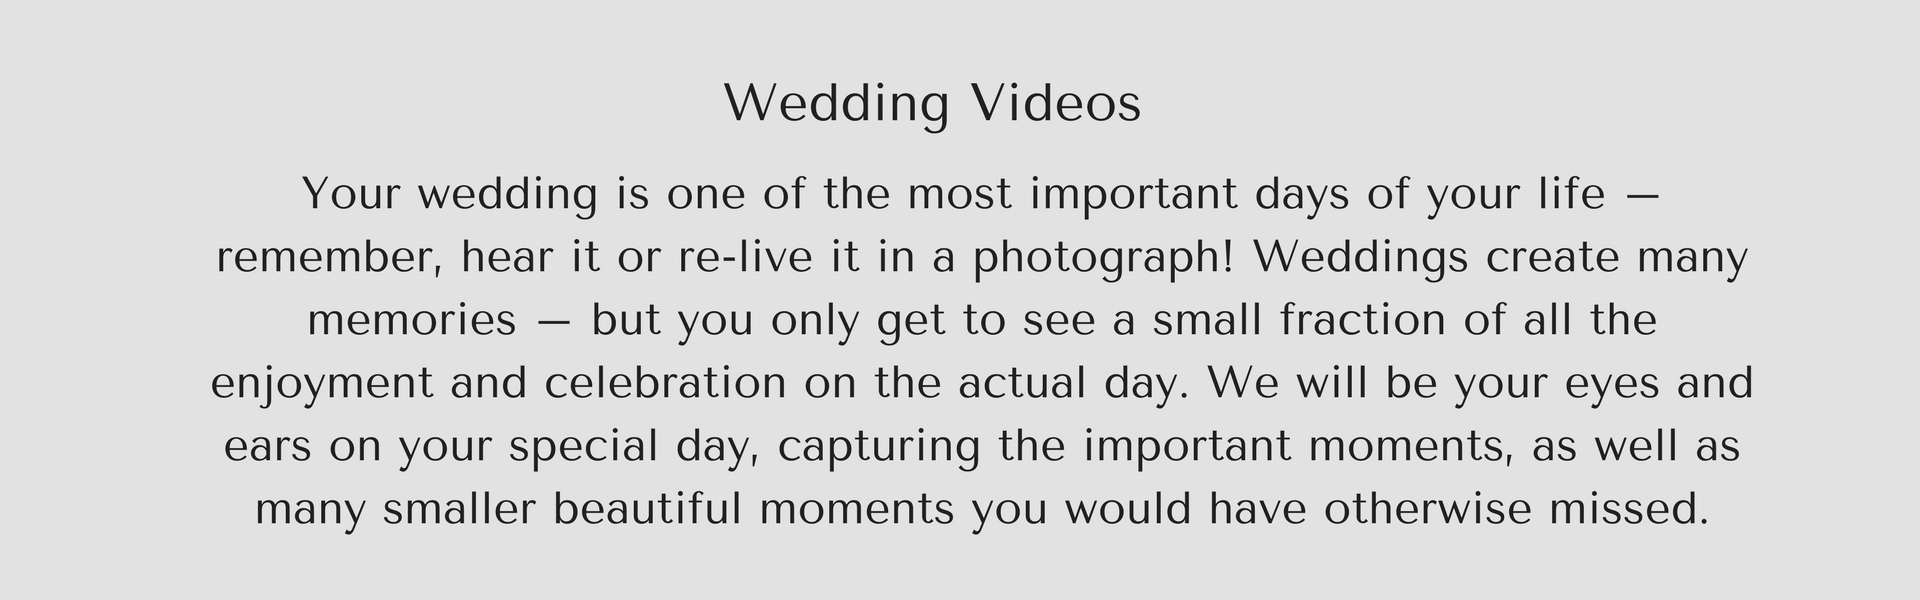 Wedding video text